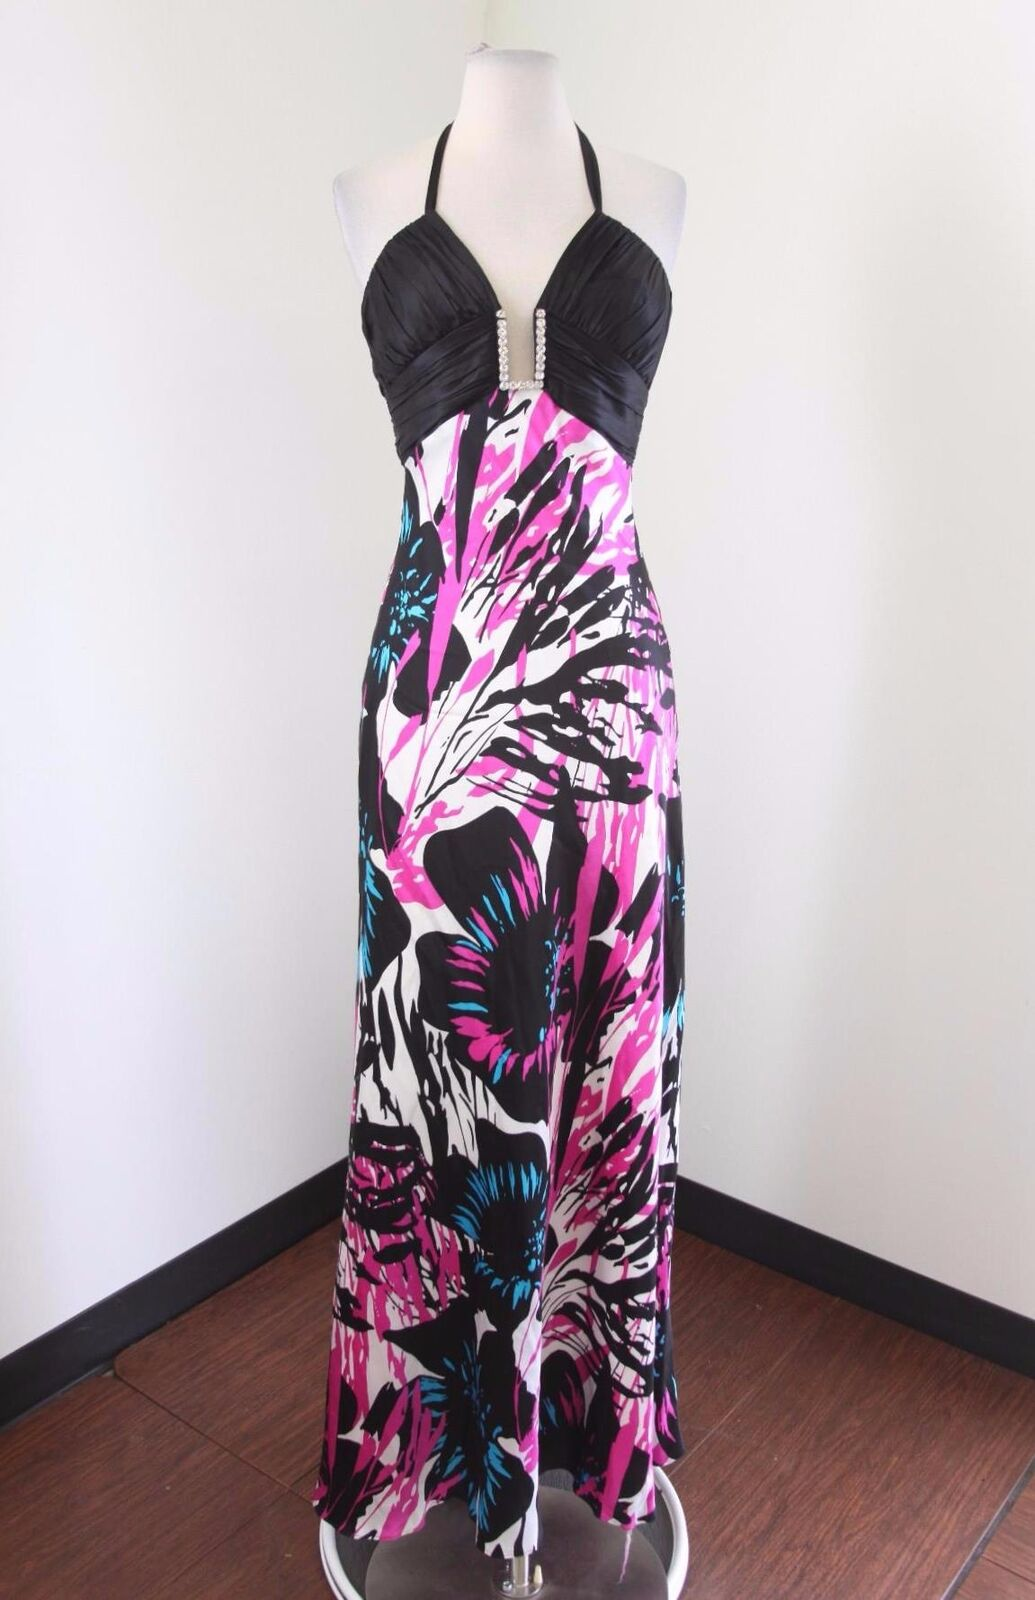 Cache Abstract Floral Halter Evening Dress Formal Prom Gown Größe 4 schwarz Rosa